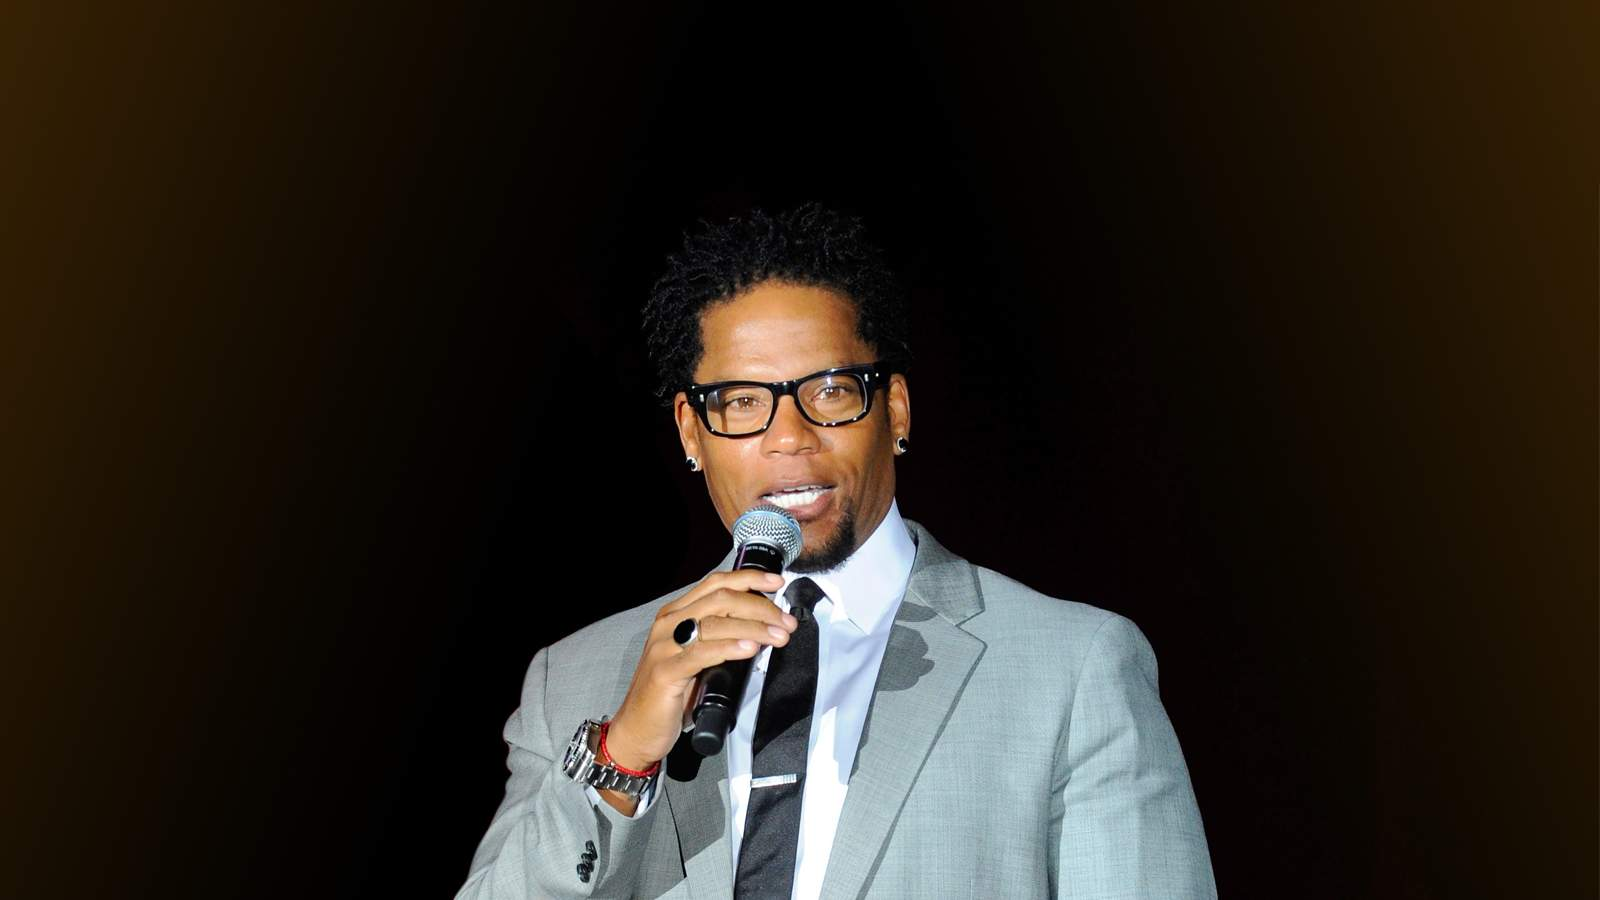 DL Hughley (21+ Event)